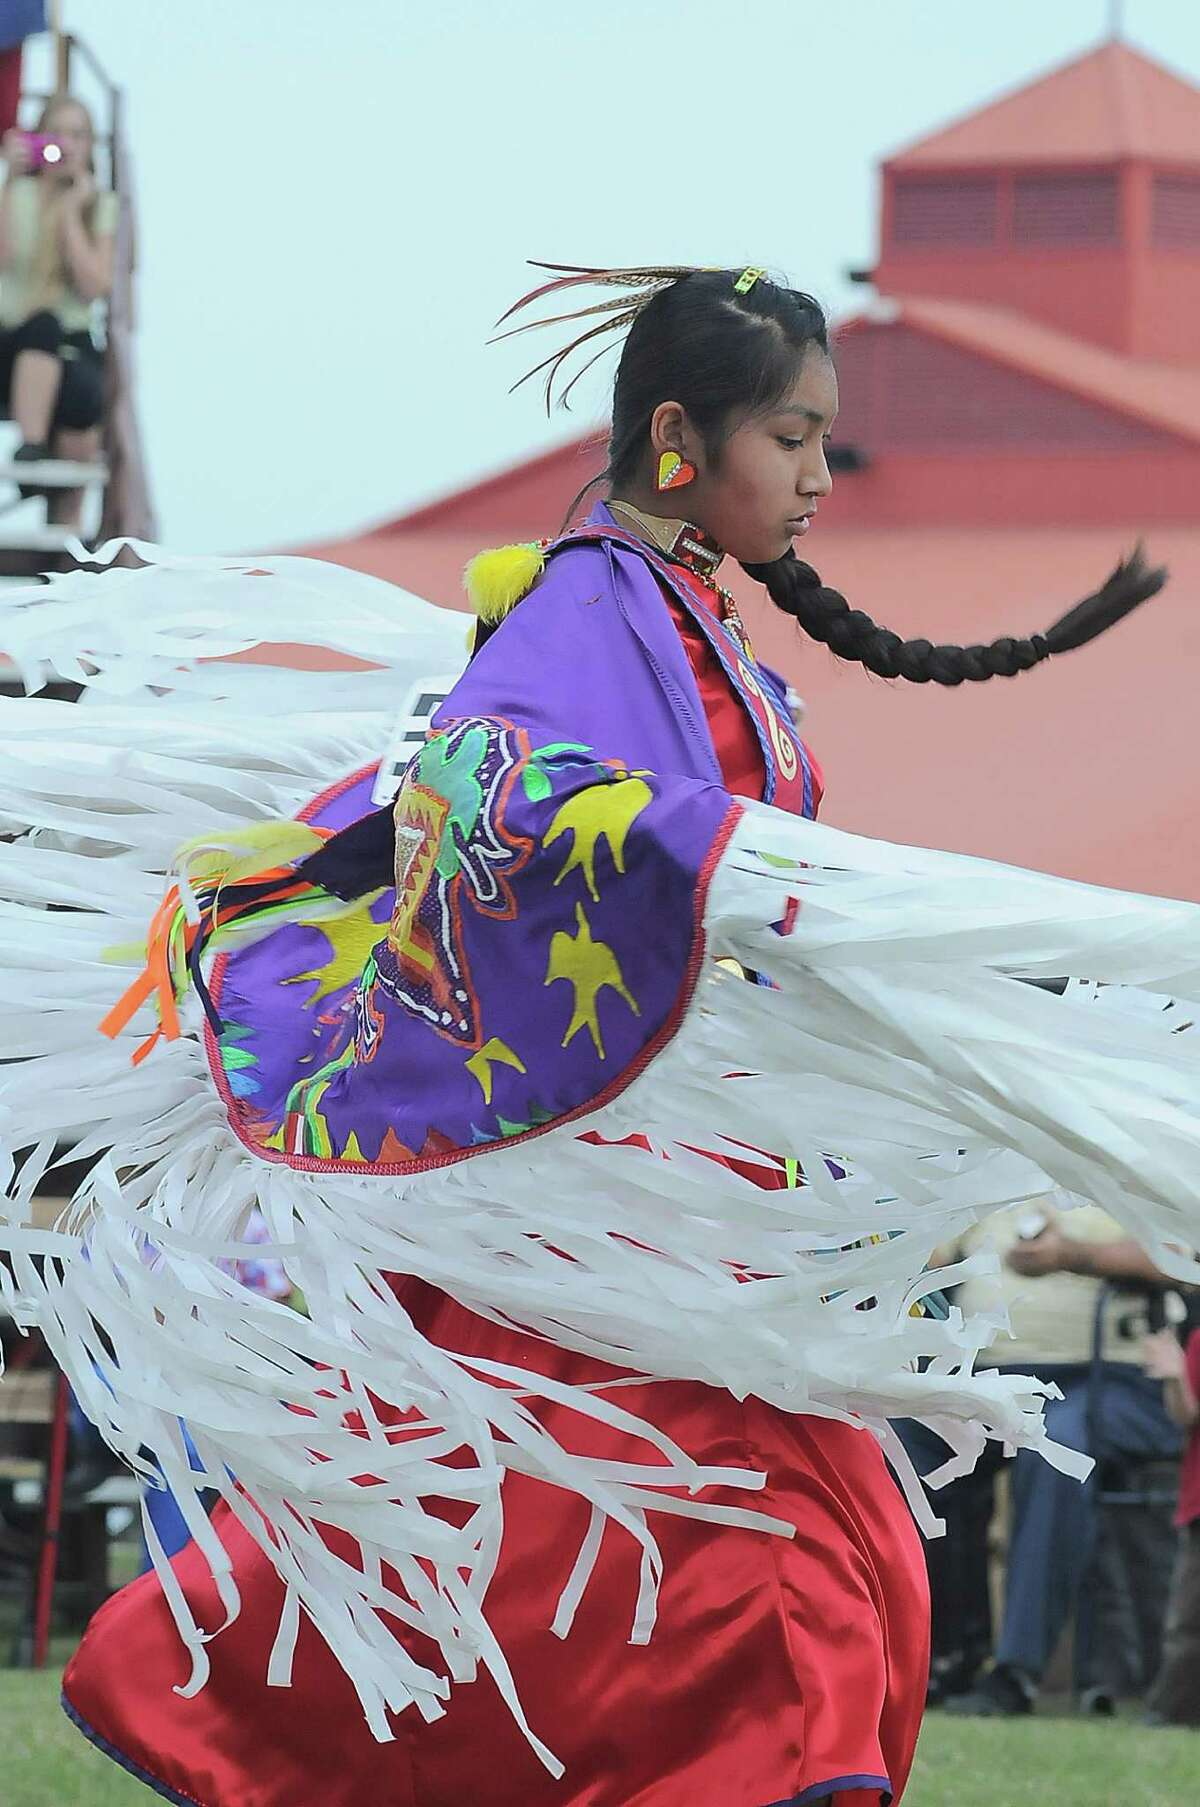 Alexis Gaines (15) from South Grand Prairie, Texas performs during the 24th Annual Texas Championship Pow Wow dance competition at Traders Village.